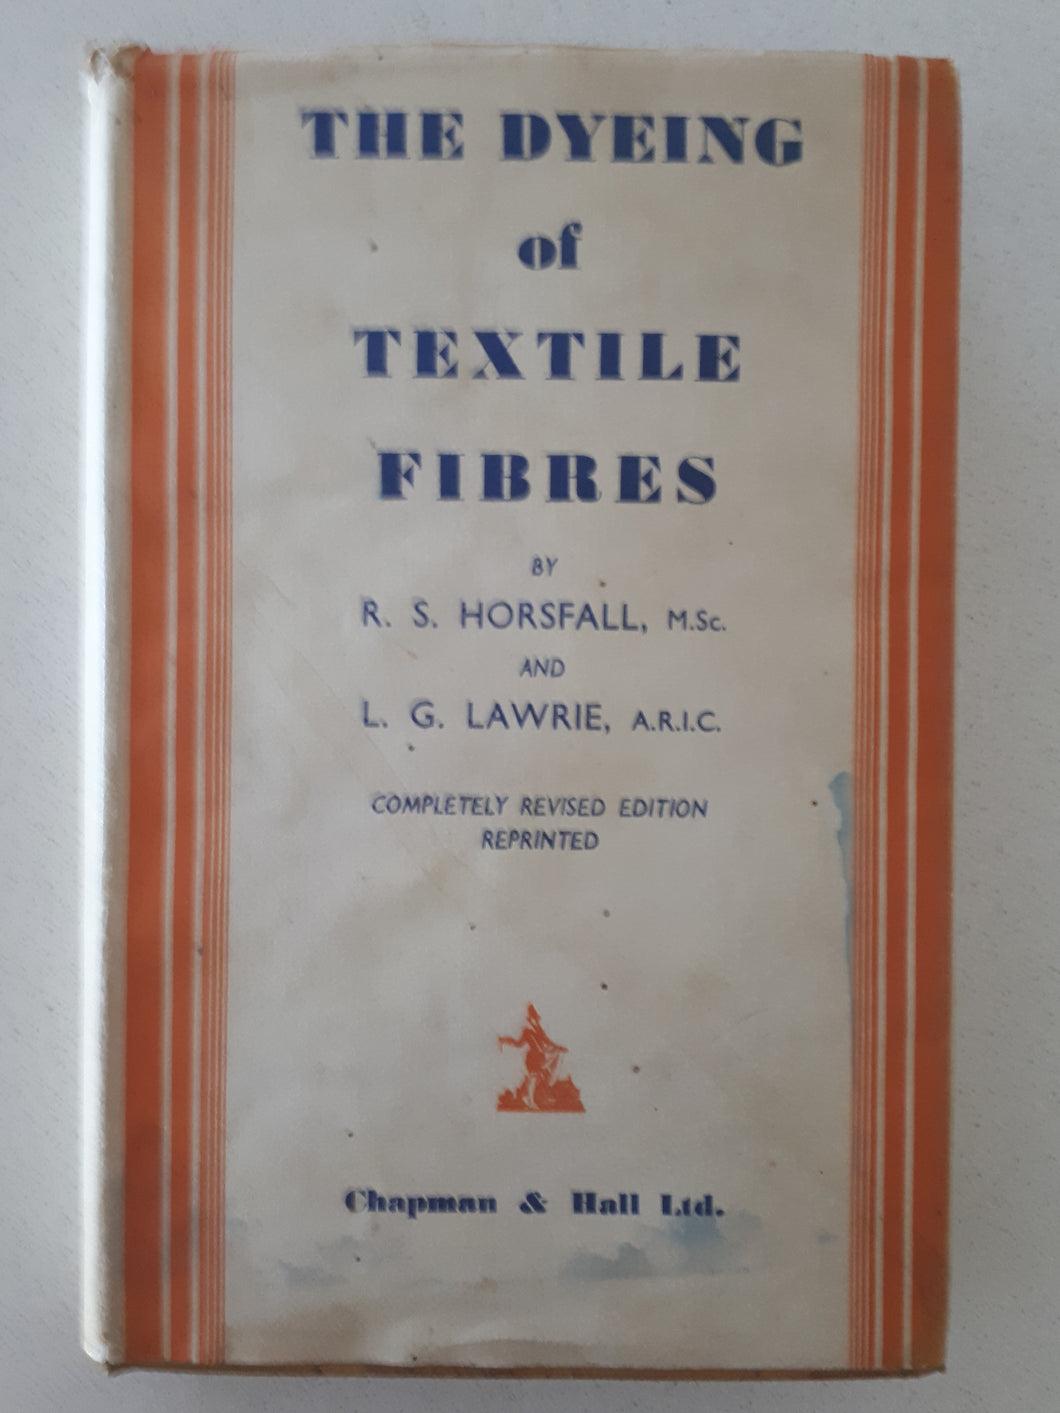 The Dyeing of Textile Fibres  by R. S. Horsfall and L. G. Lawrie